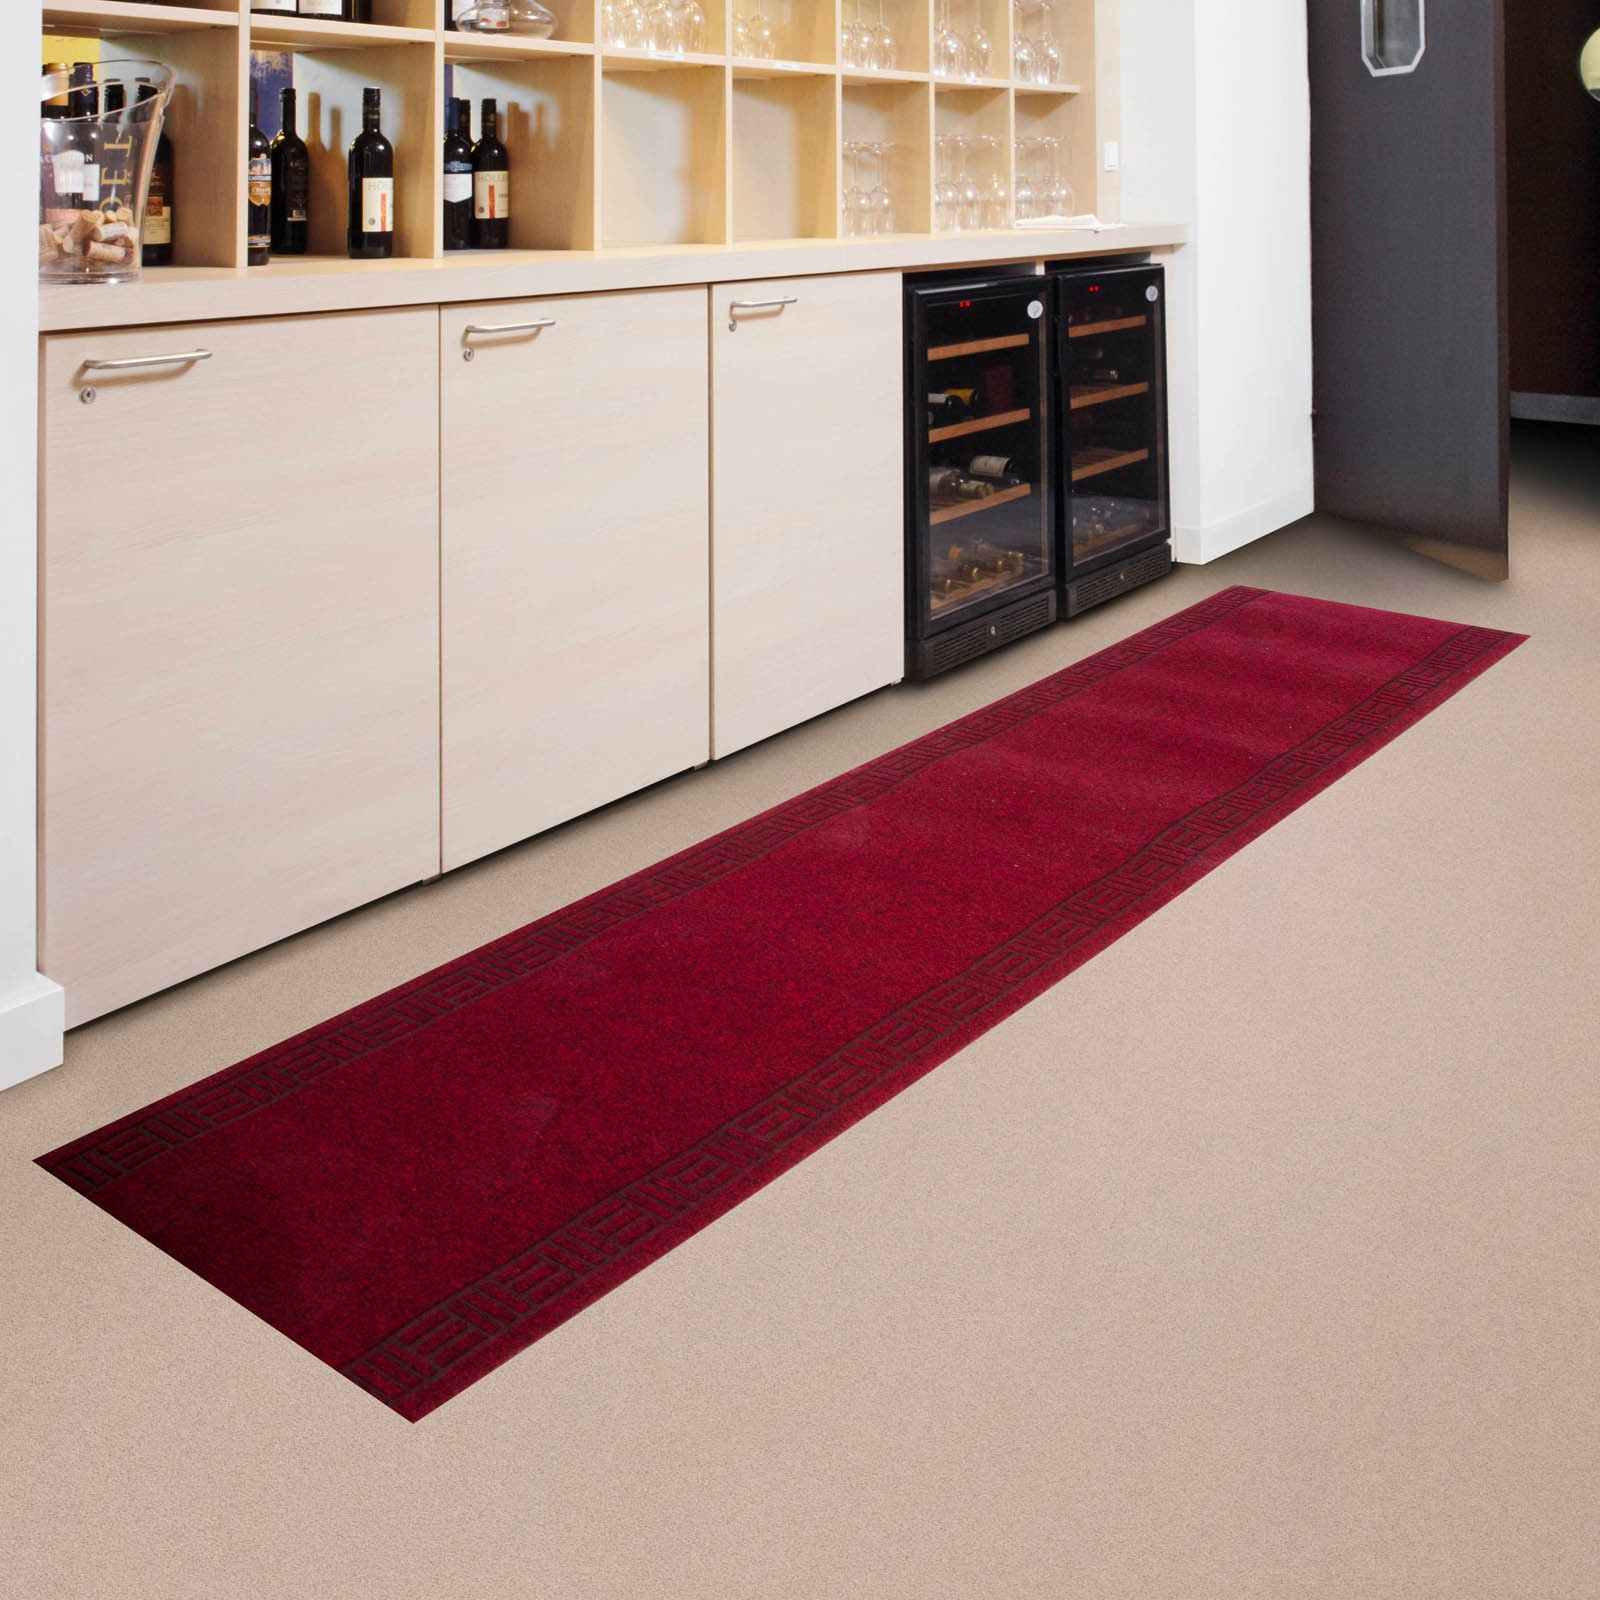 marvelous Kitchen Mat Rug #4: runner rug idea in red color for kitchen pantry